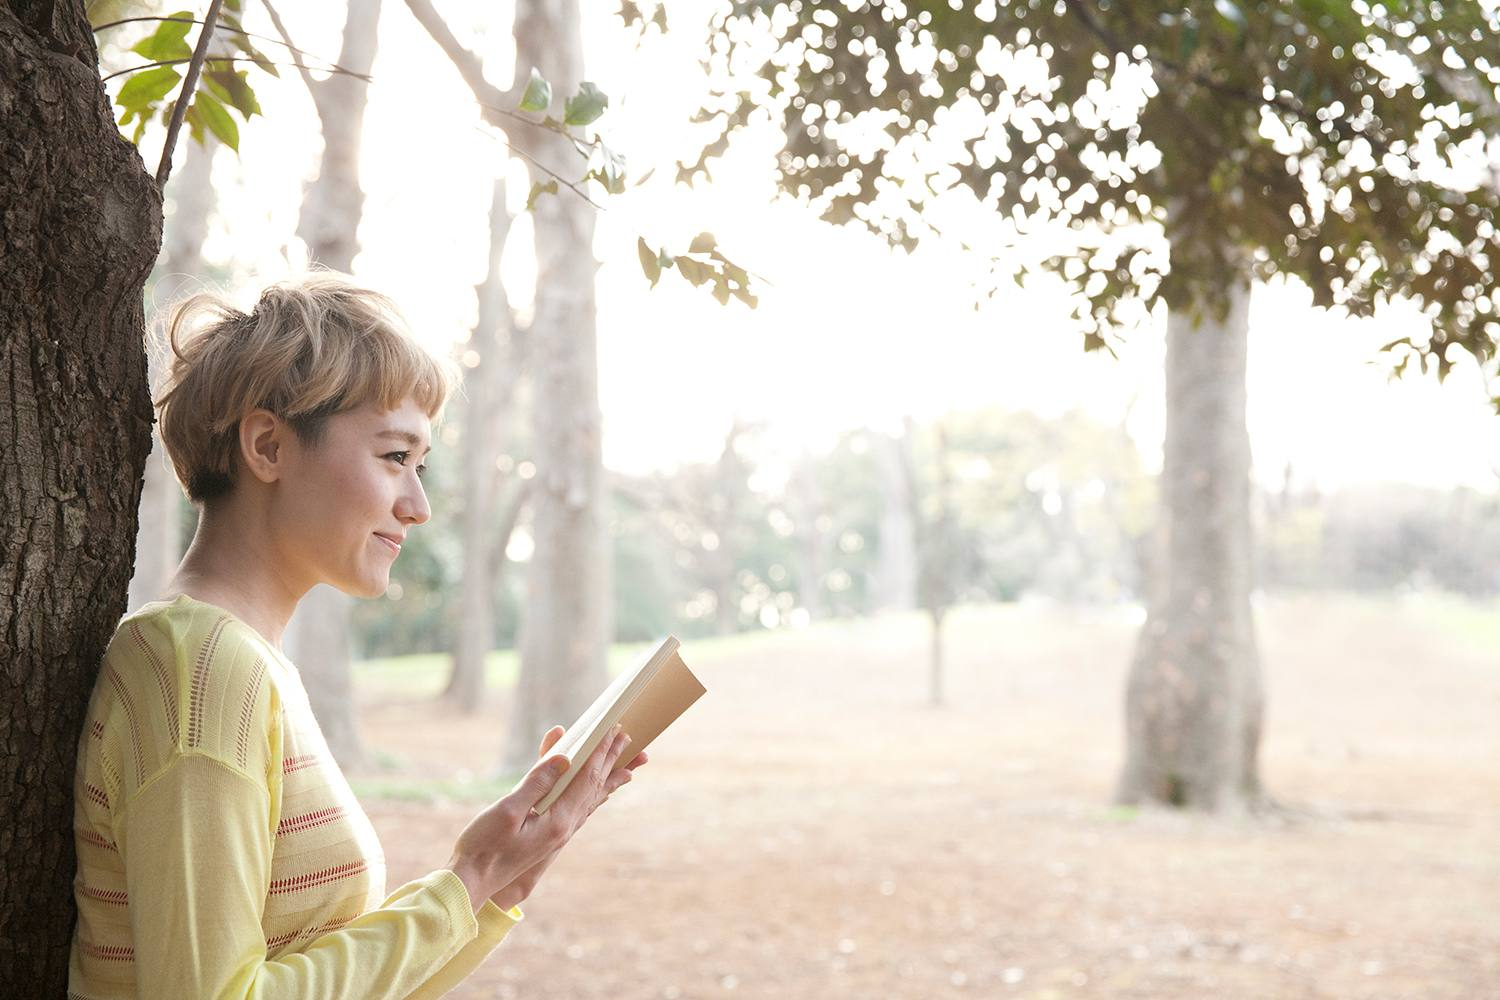 Fashionable Japanese woman reading book in park.